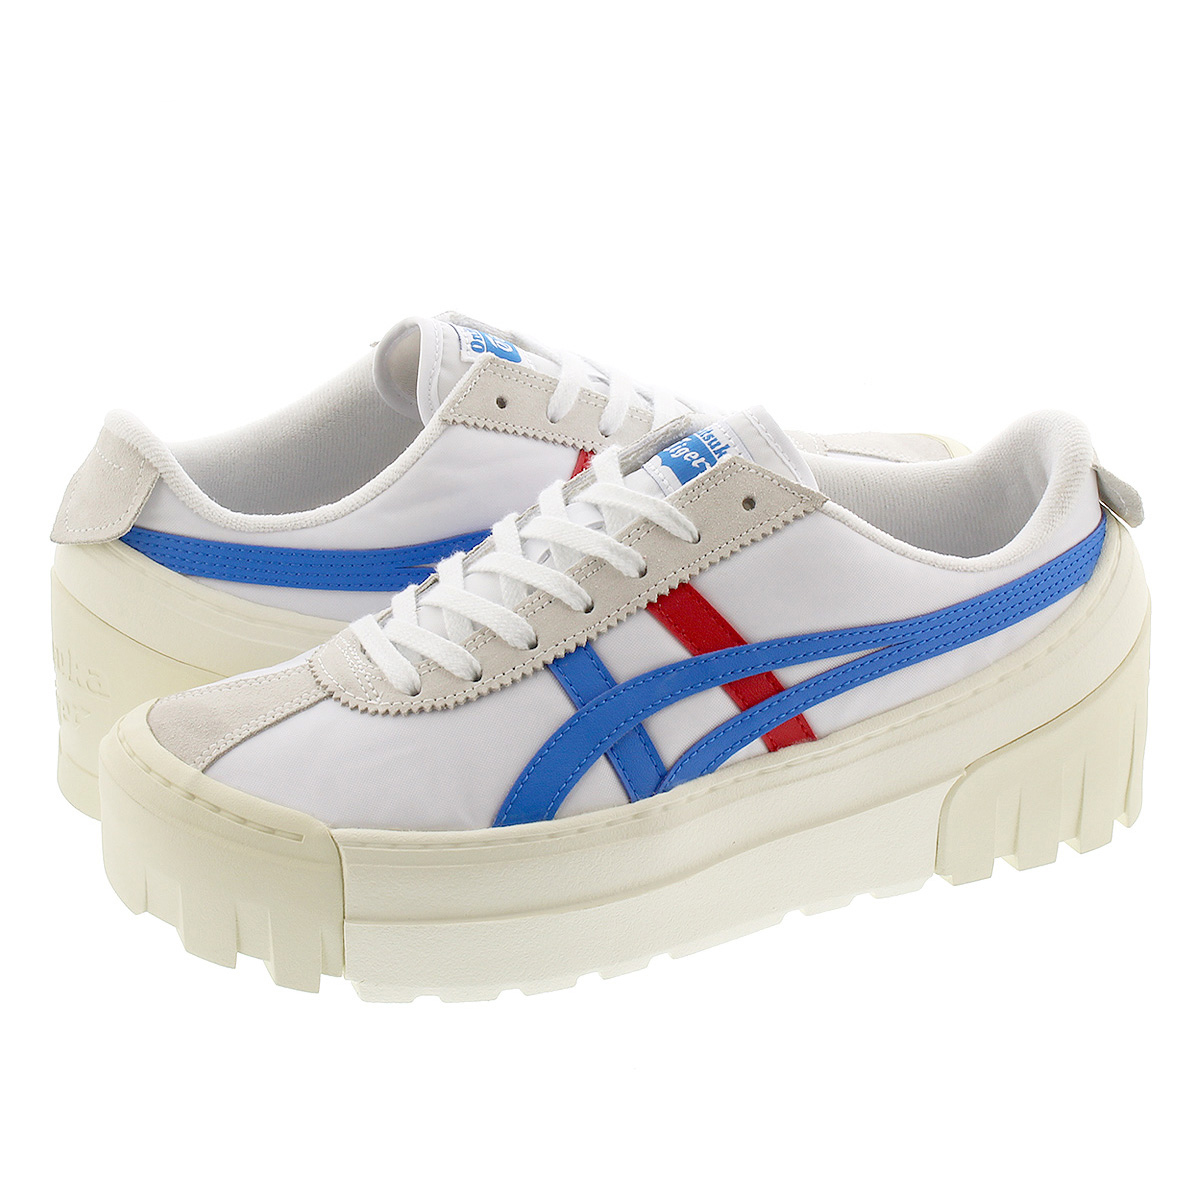 Onitsuka Tiger DELEGATION CHUNK オニツカ タイガー デレゲーション チャンク WHITE/DIRECTOIRE BLUE 1183a585-105